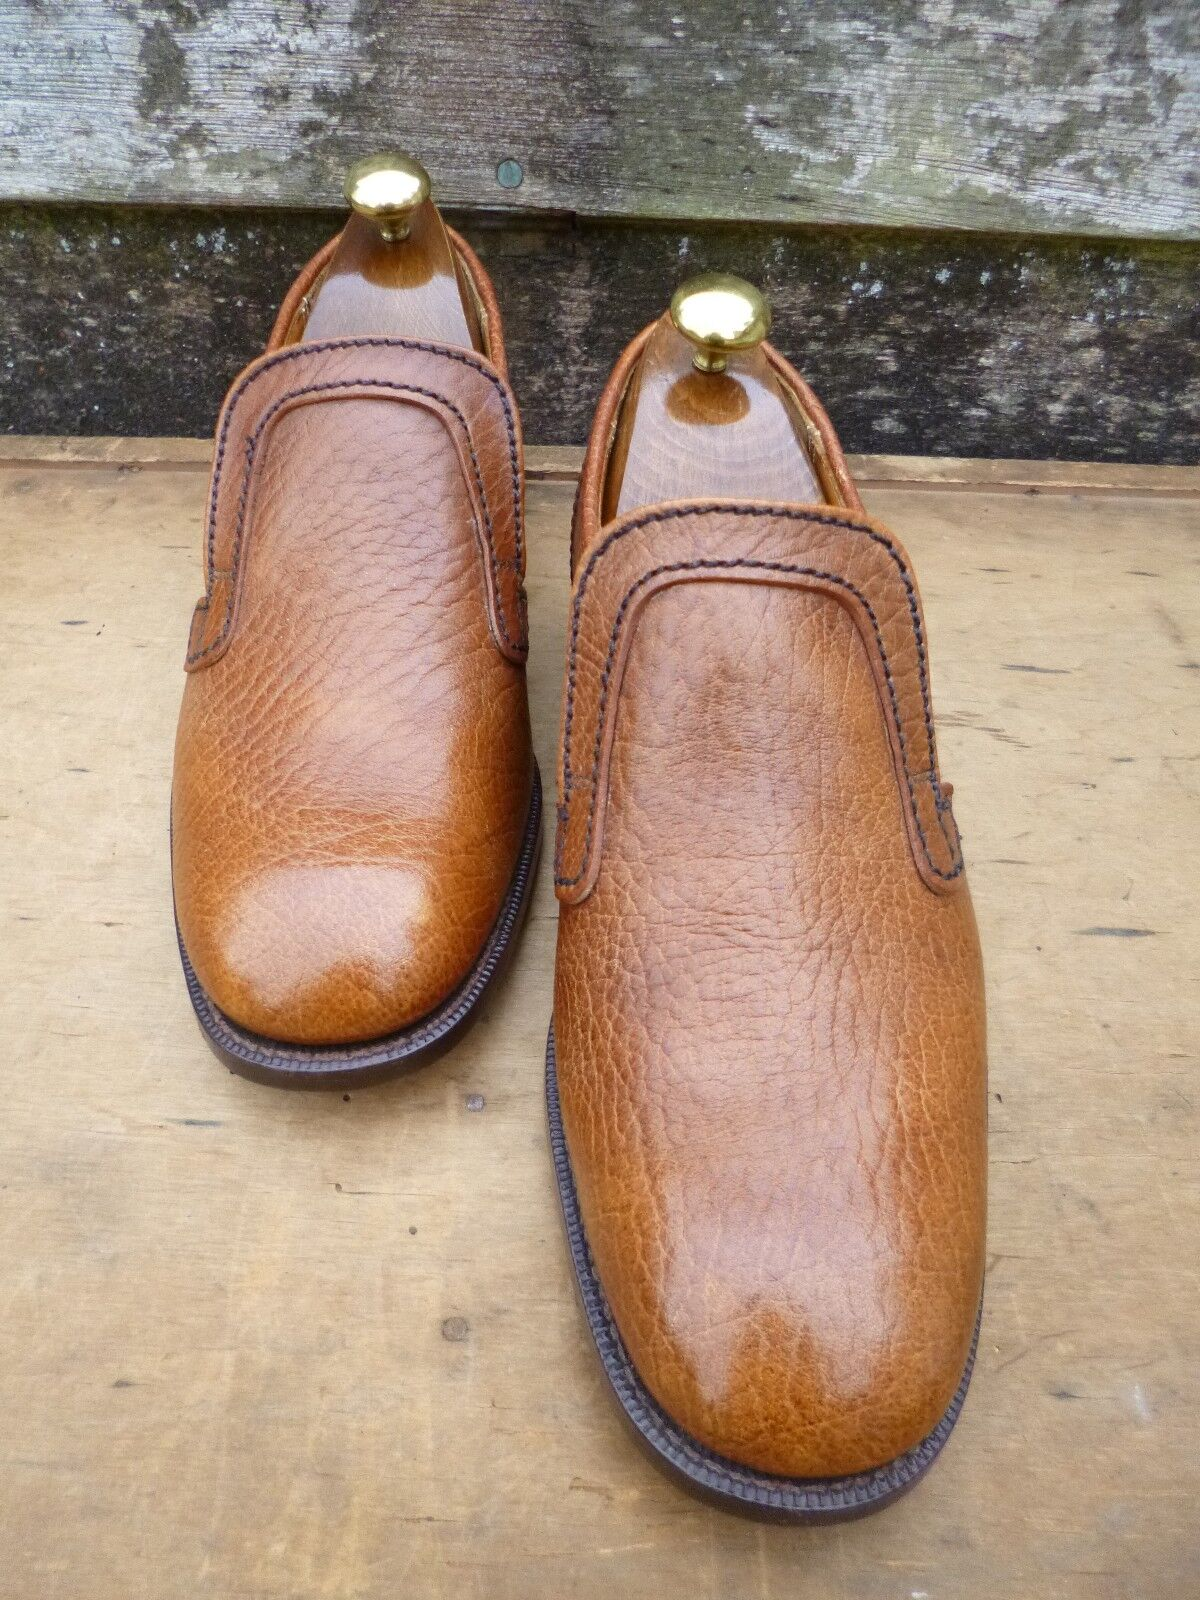 CHEANEY / CHURCH VINTAGE LOAFERS – BROWN / TAN TAN / – UK 6.5 – UNWORN CONDITION dfc8ed